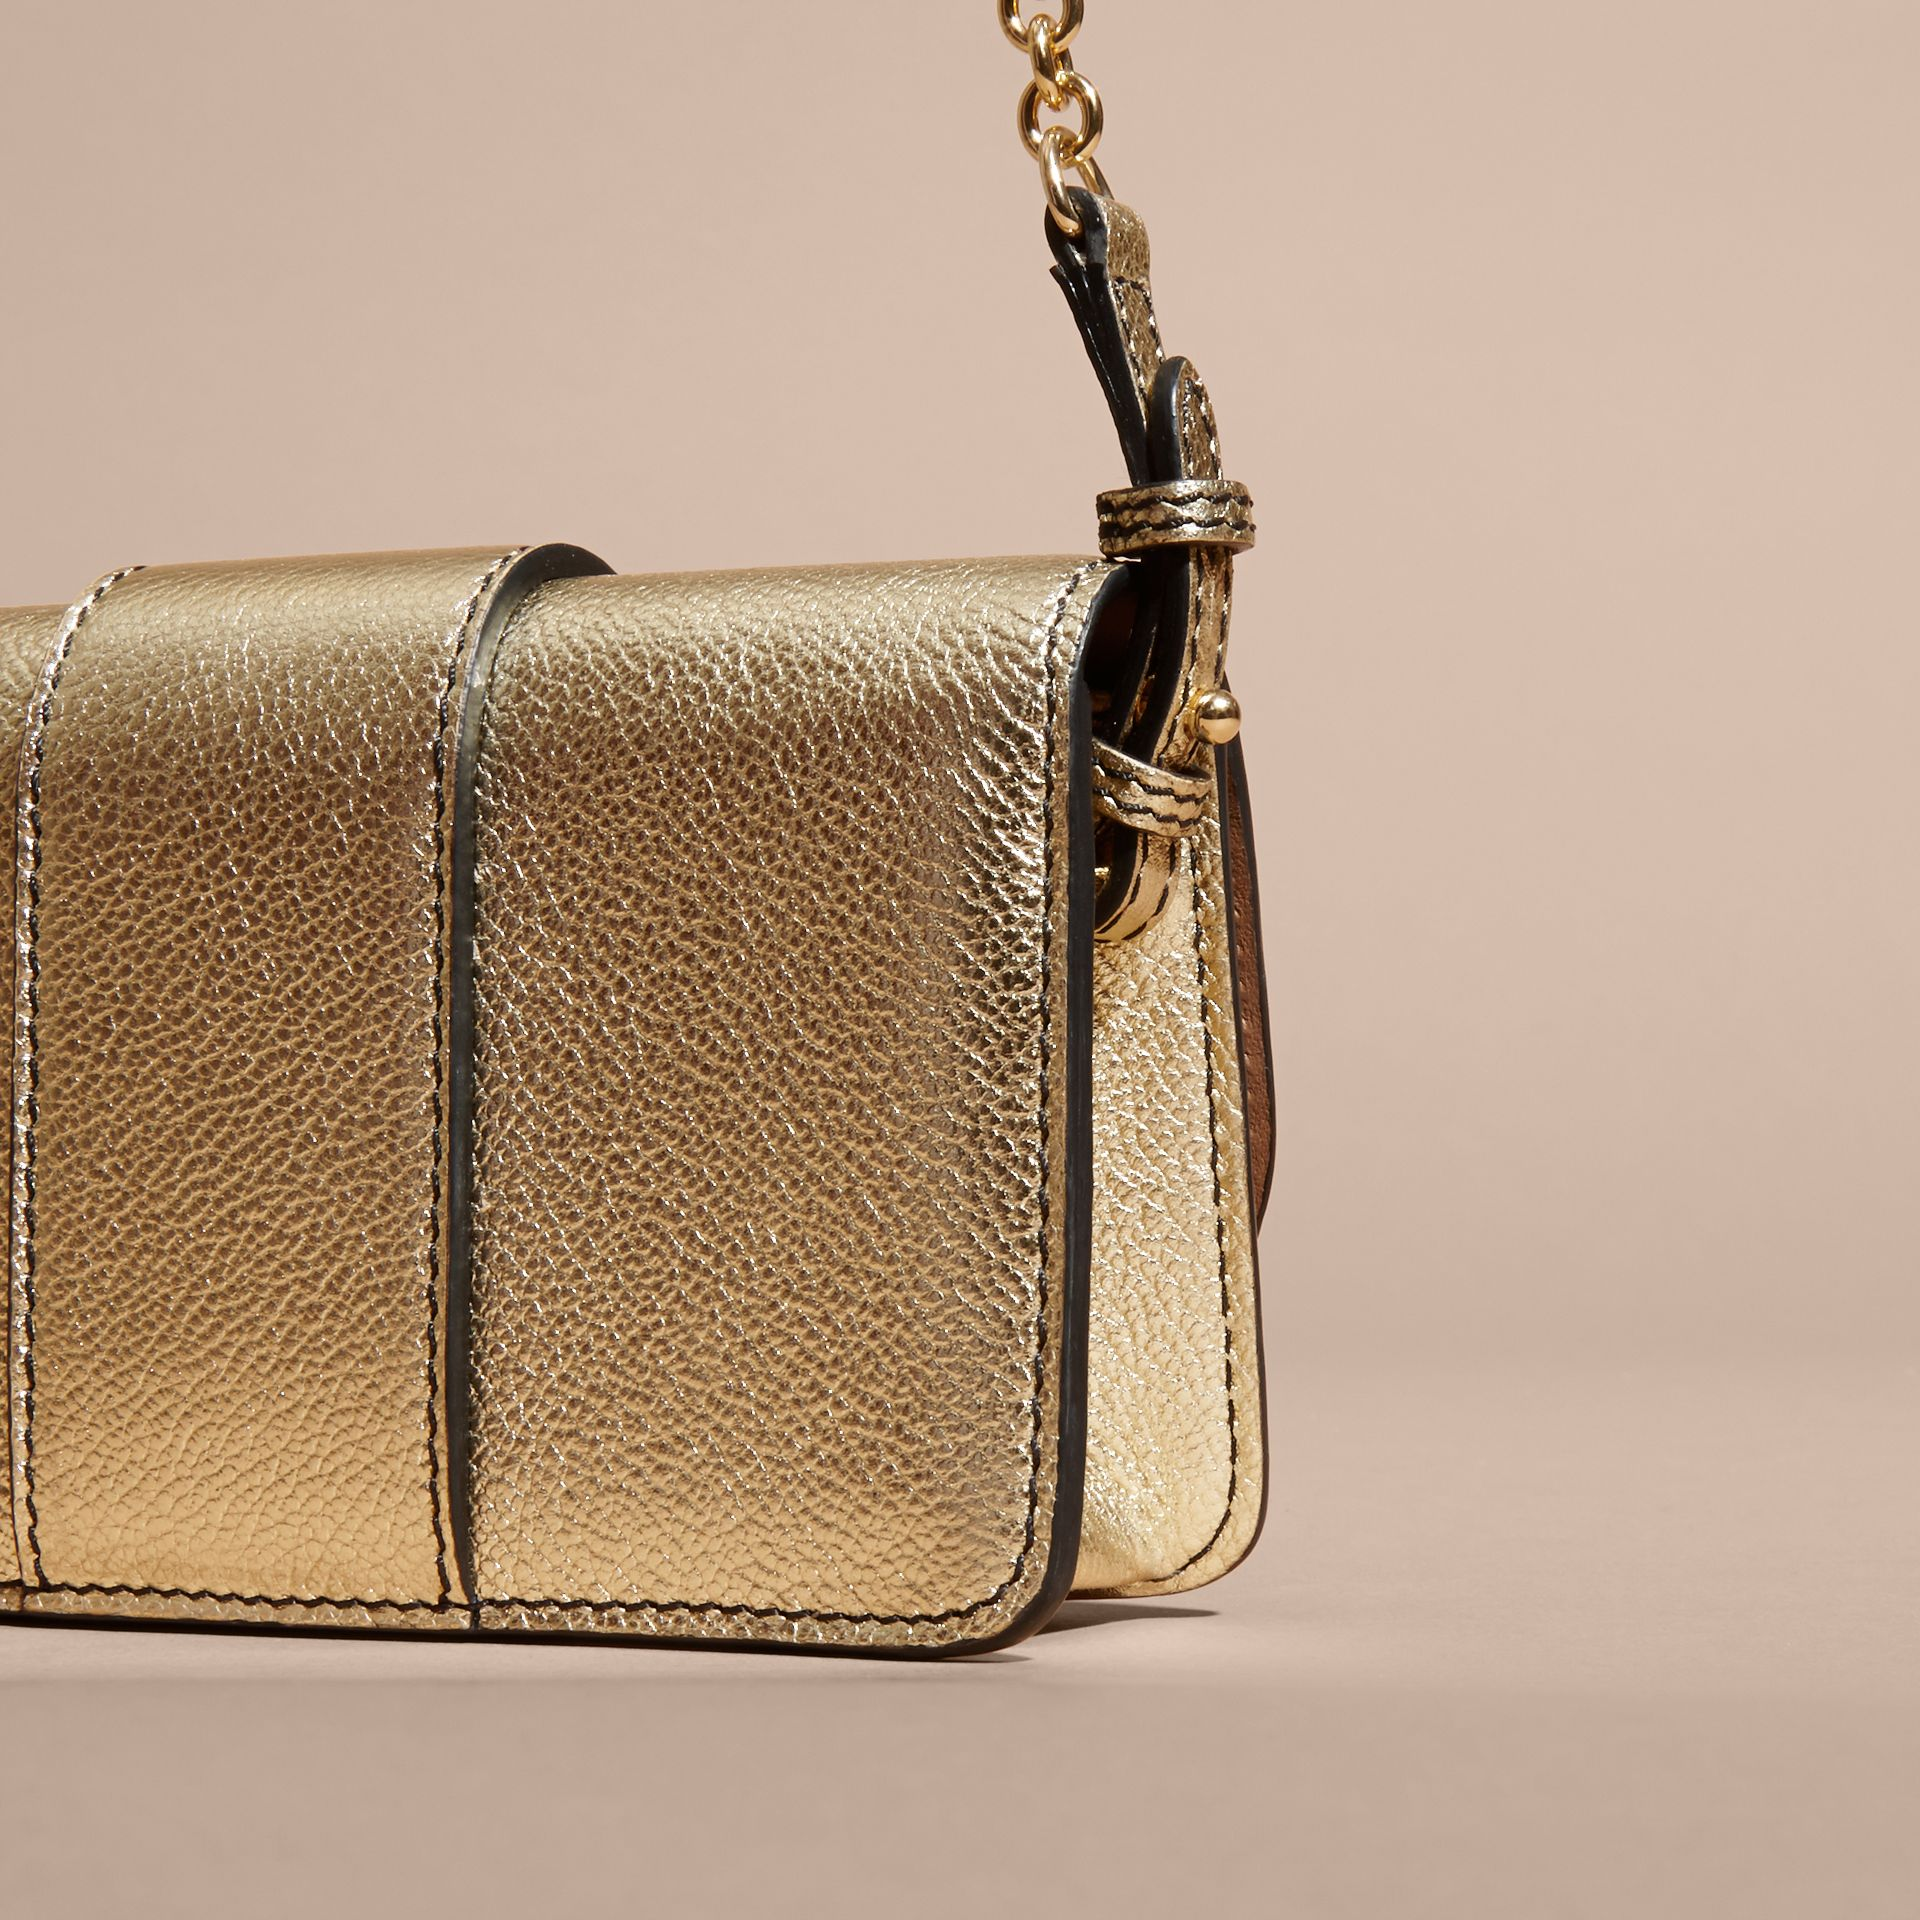 The Mini Buckle Bag in Metallic Grainy Leather in Gold - gallery image 7